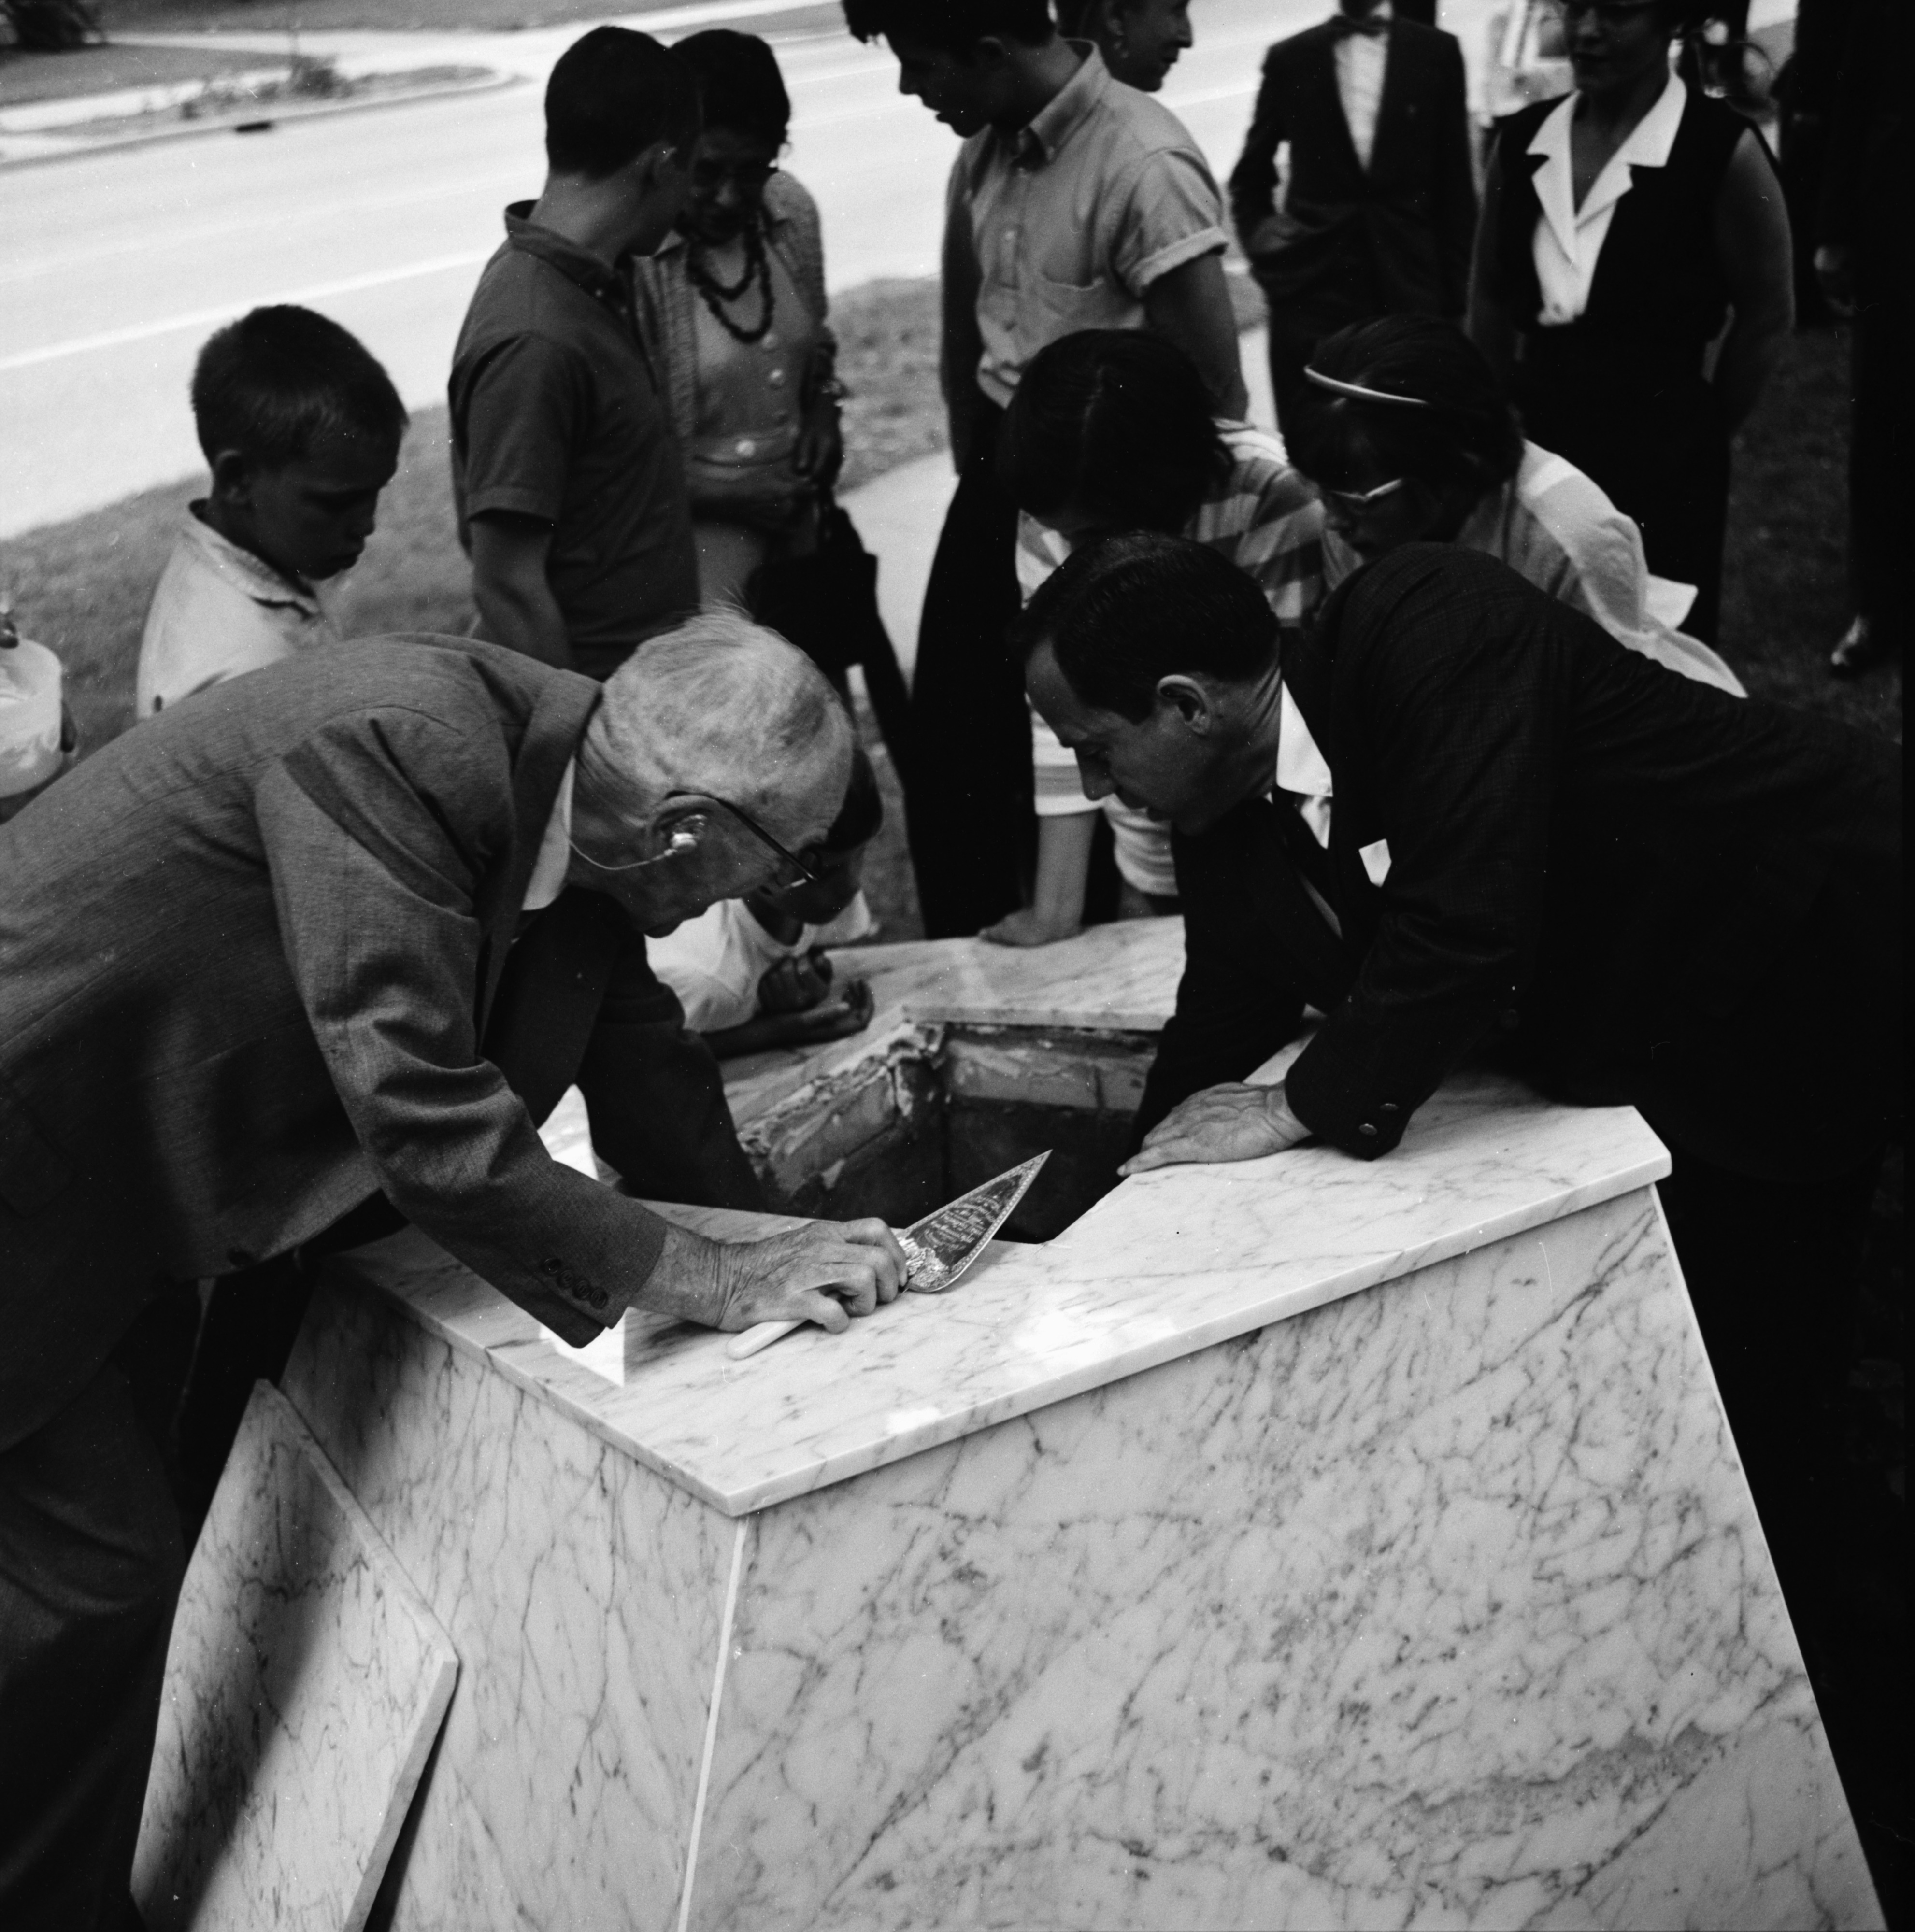 Looking down into the Time Capsule on Huron Street Lawn, June 1962 image